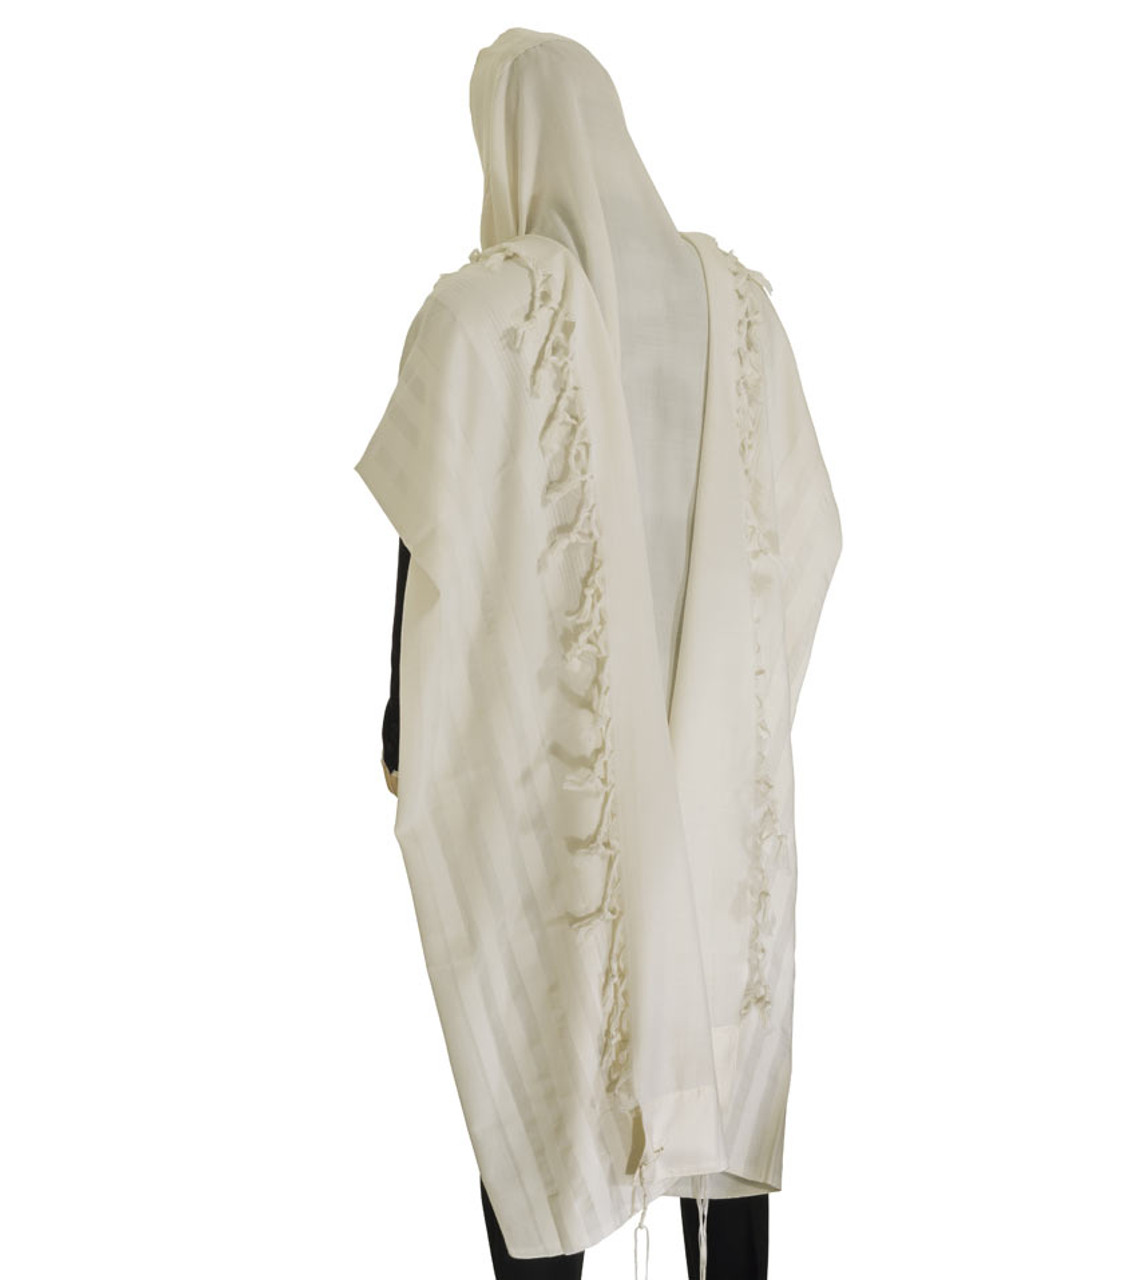 Malchut Nonslip Tallit with Doubled Fringes